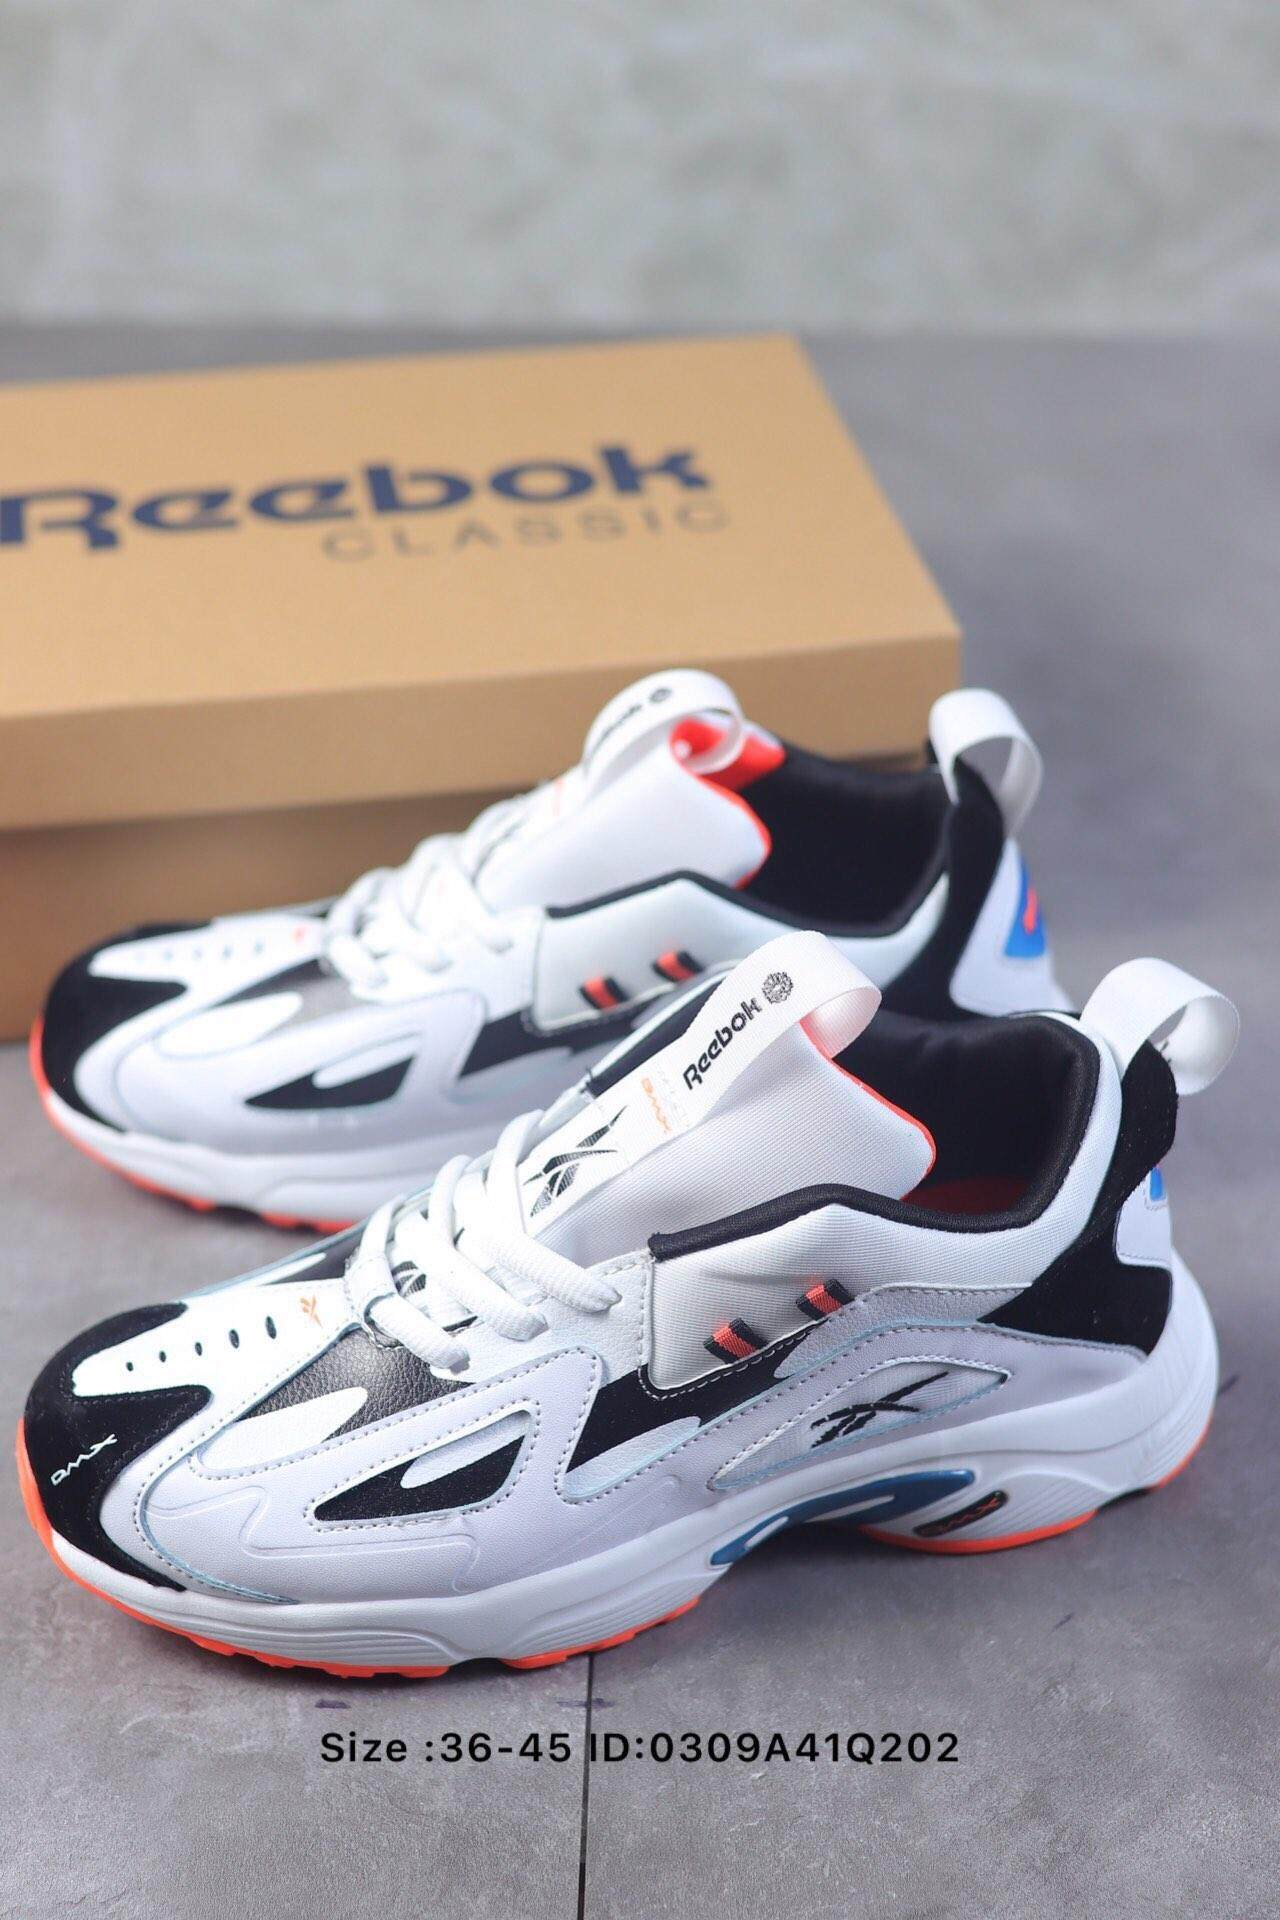 e55597603fc Reebok DMX Series 1200 casual shoes retro sports dad shoes for men and women